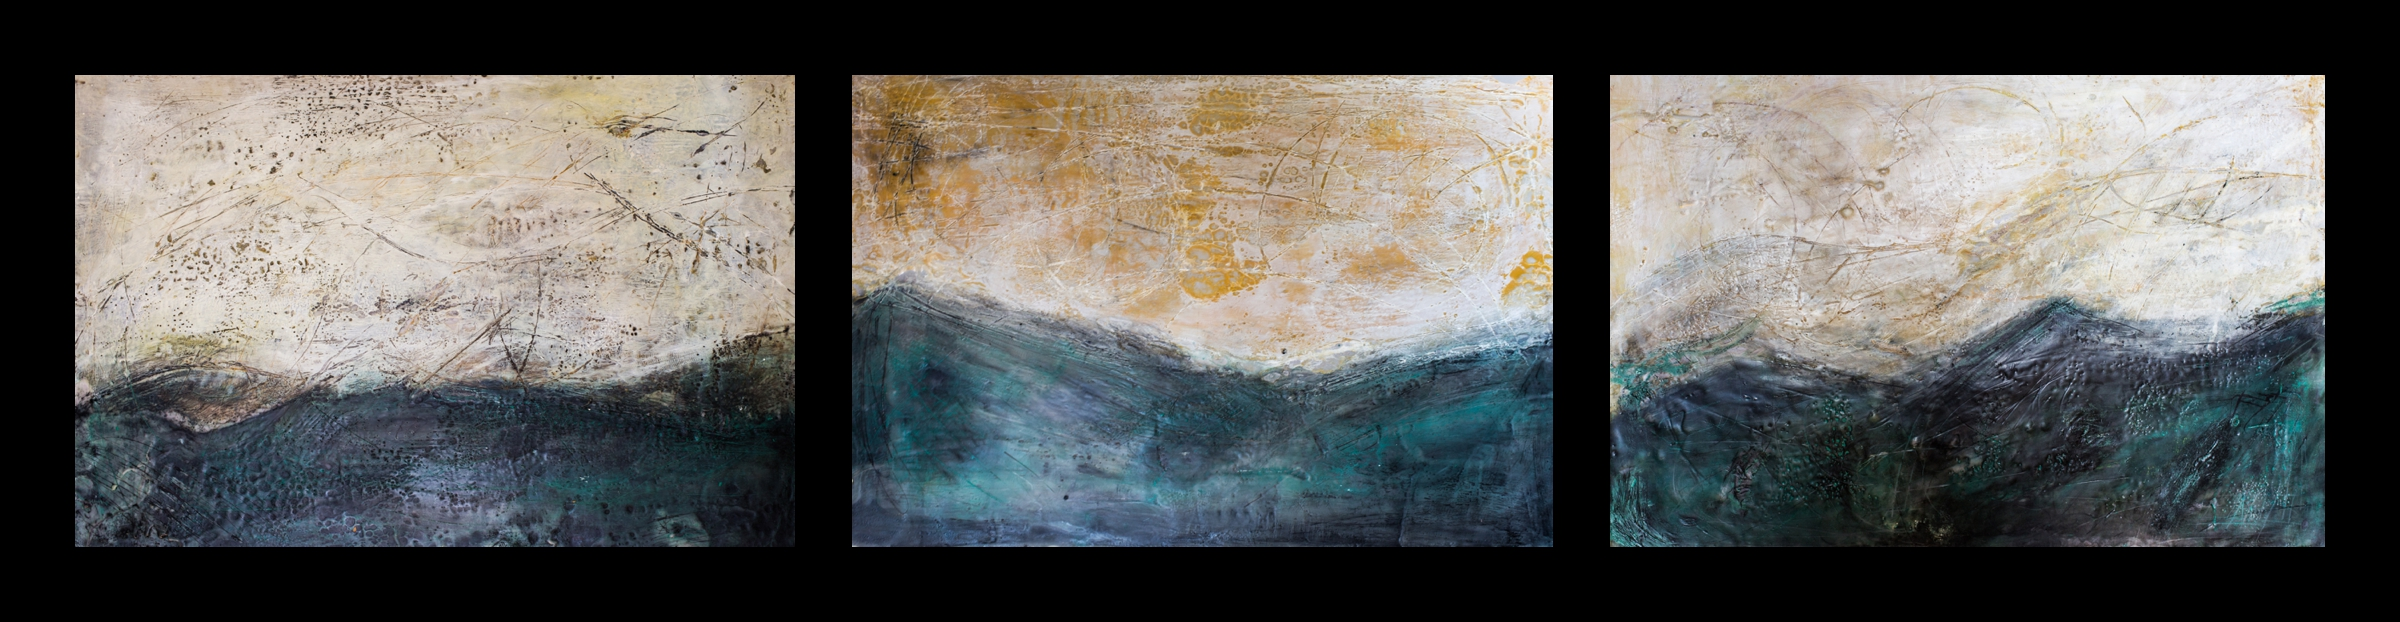 In The Canyon. Encaustic Photograph Triptych © Katy Tuttle 2016